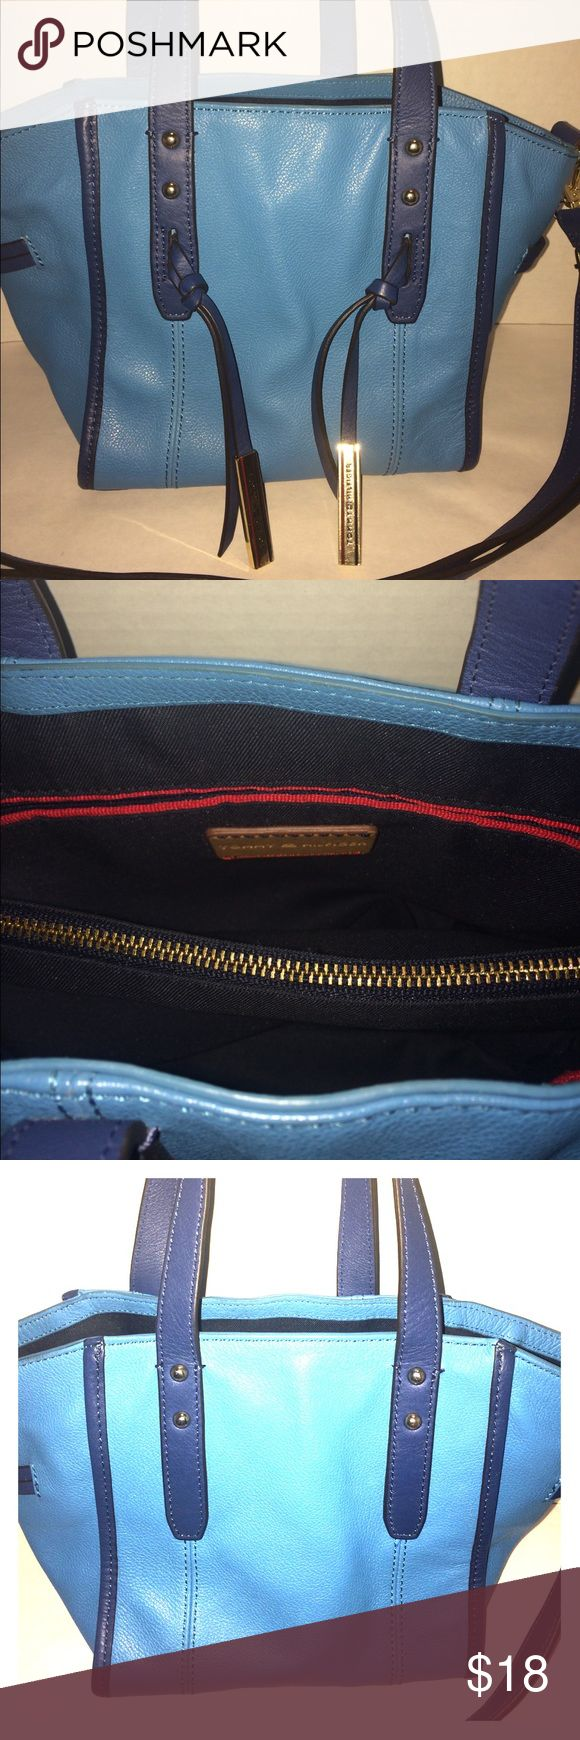 Blue Tommy Hilfiger handbag This blue handbag has two open compartments and a middle zipping compartment. It also has an inside zipping pocket and two open pockets perfect for cellphones and accessories! Tommy Hilfiger Bags Shoulder Bags